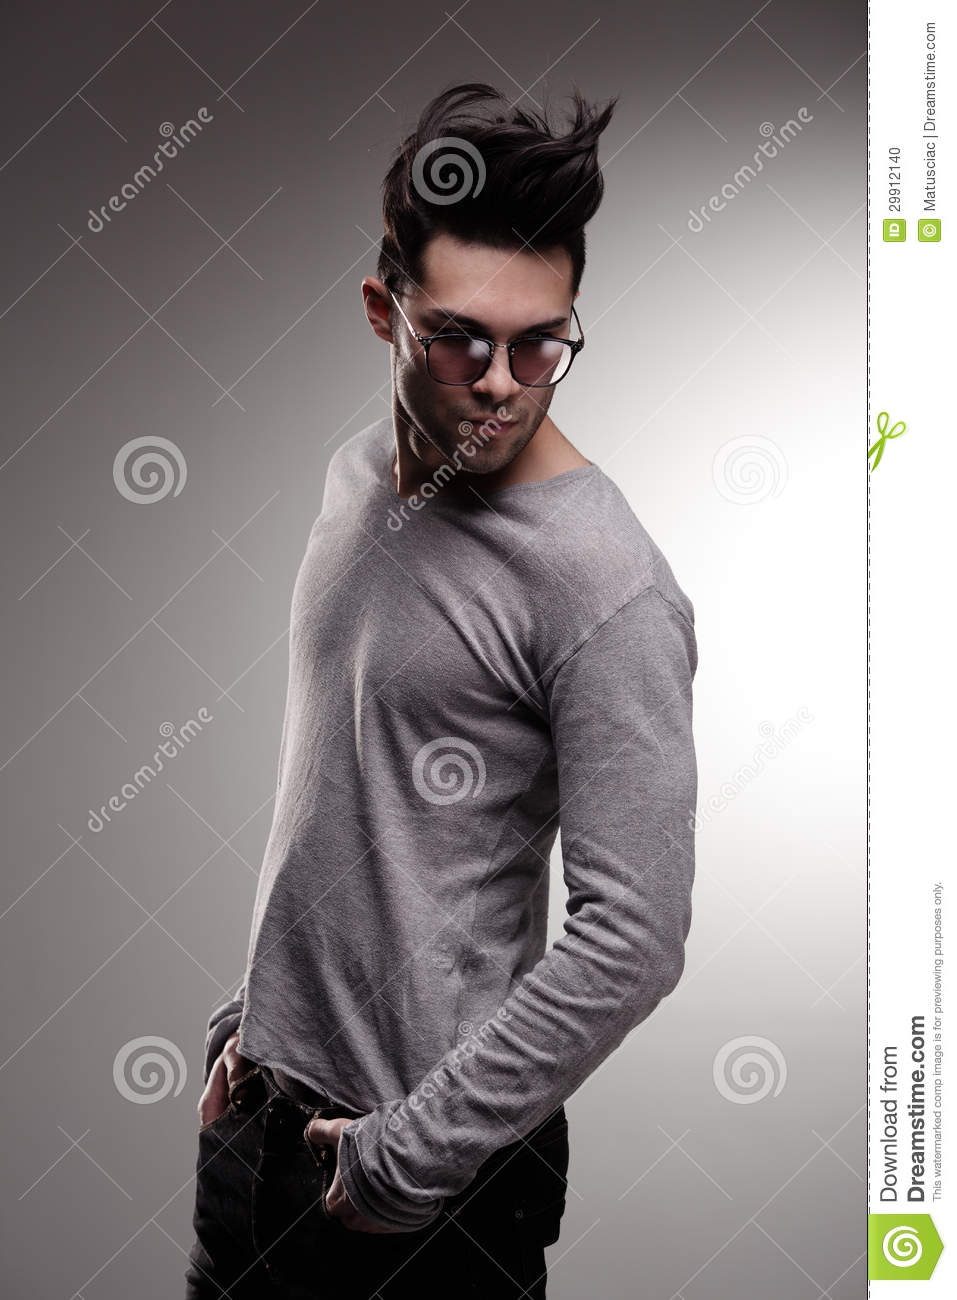 Fashion Man Model Dressed Casual Posing Dramatic In The